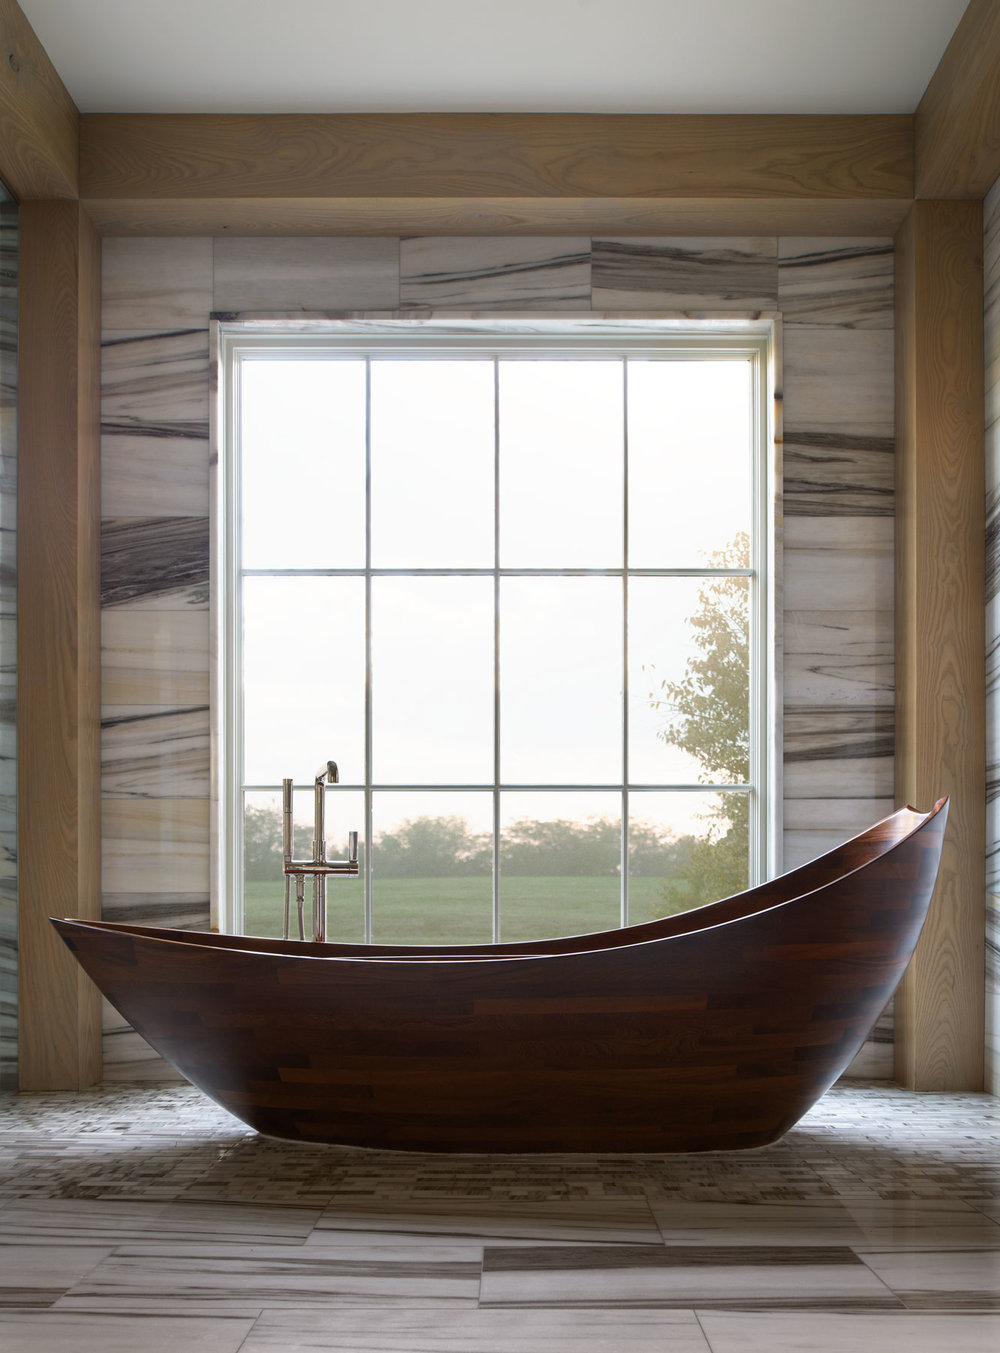 This hardwood tub serves and the visual centerpiece of the master retreat. While I didn't confirm with the homeowner, I'm pretty certain the tub is Brazilian Walnut (Ipe).